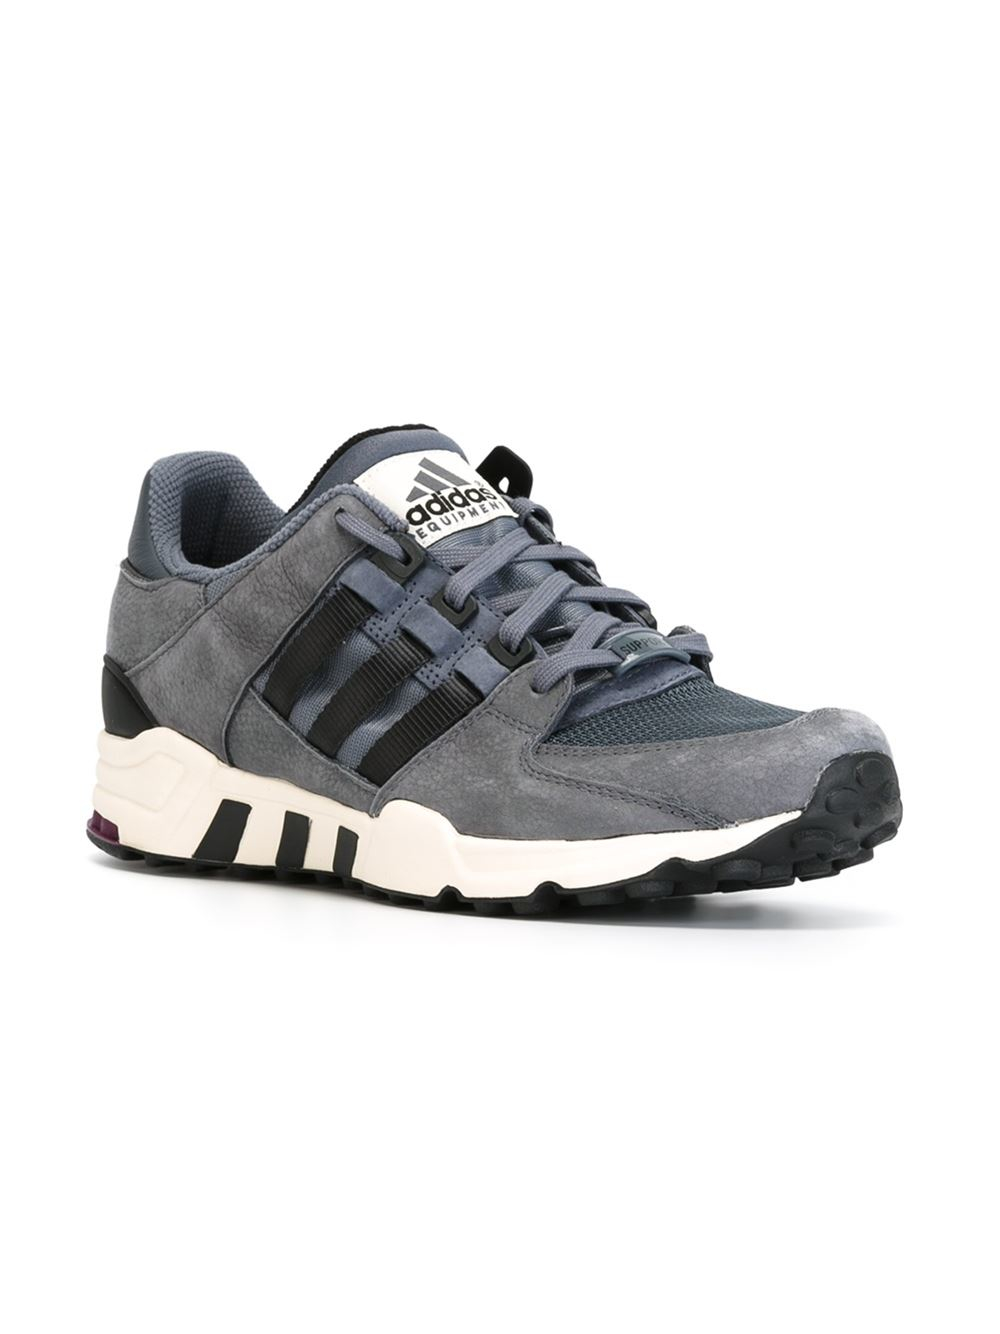 Adidas Originals Originals Top Ten Low Sneaker In Black: Adidas Originals 'equipment Running Support' Sneakers In